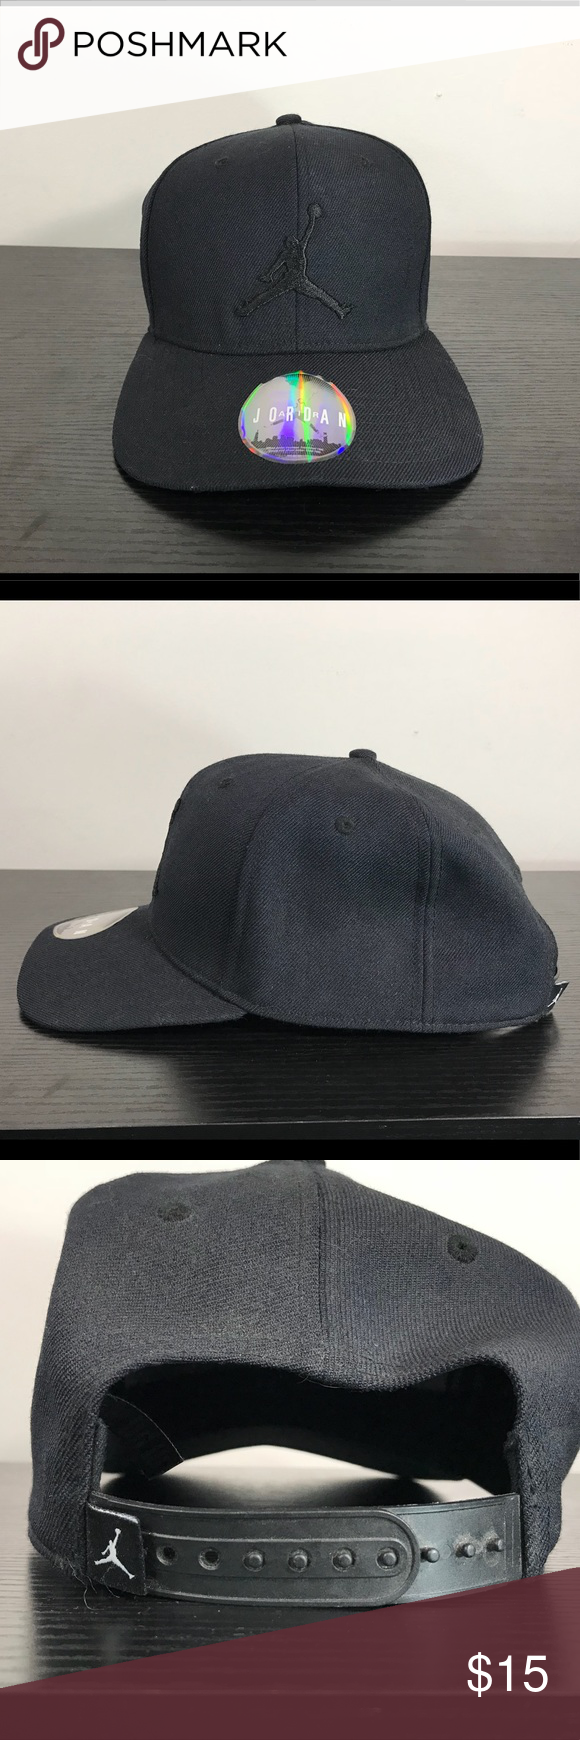 344a4654201 Nike Air Jordan Jumpman Snap Back Fitted Hat Black Hello Everybody!! I m